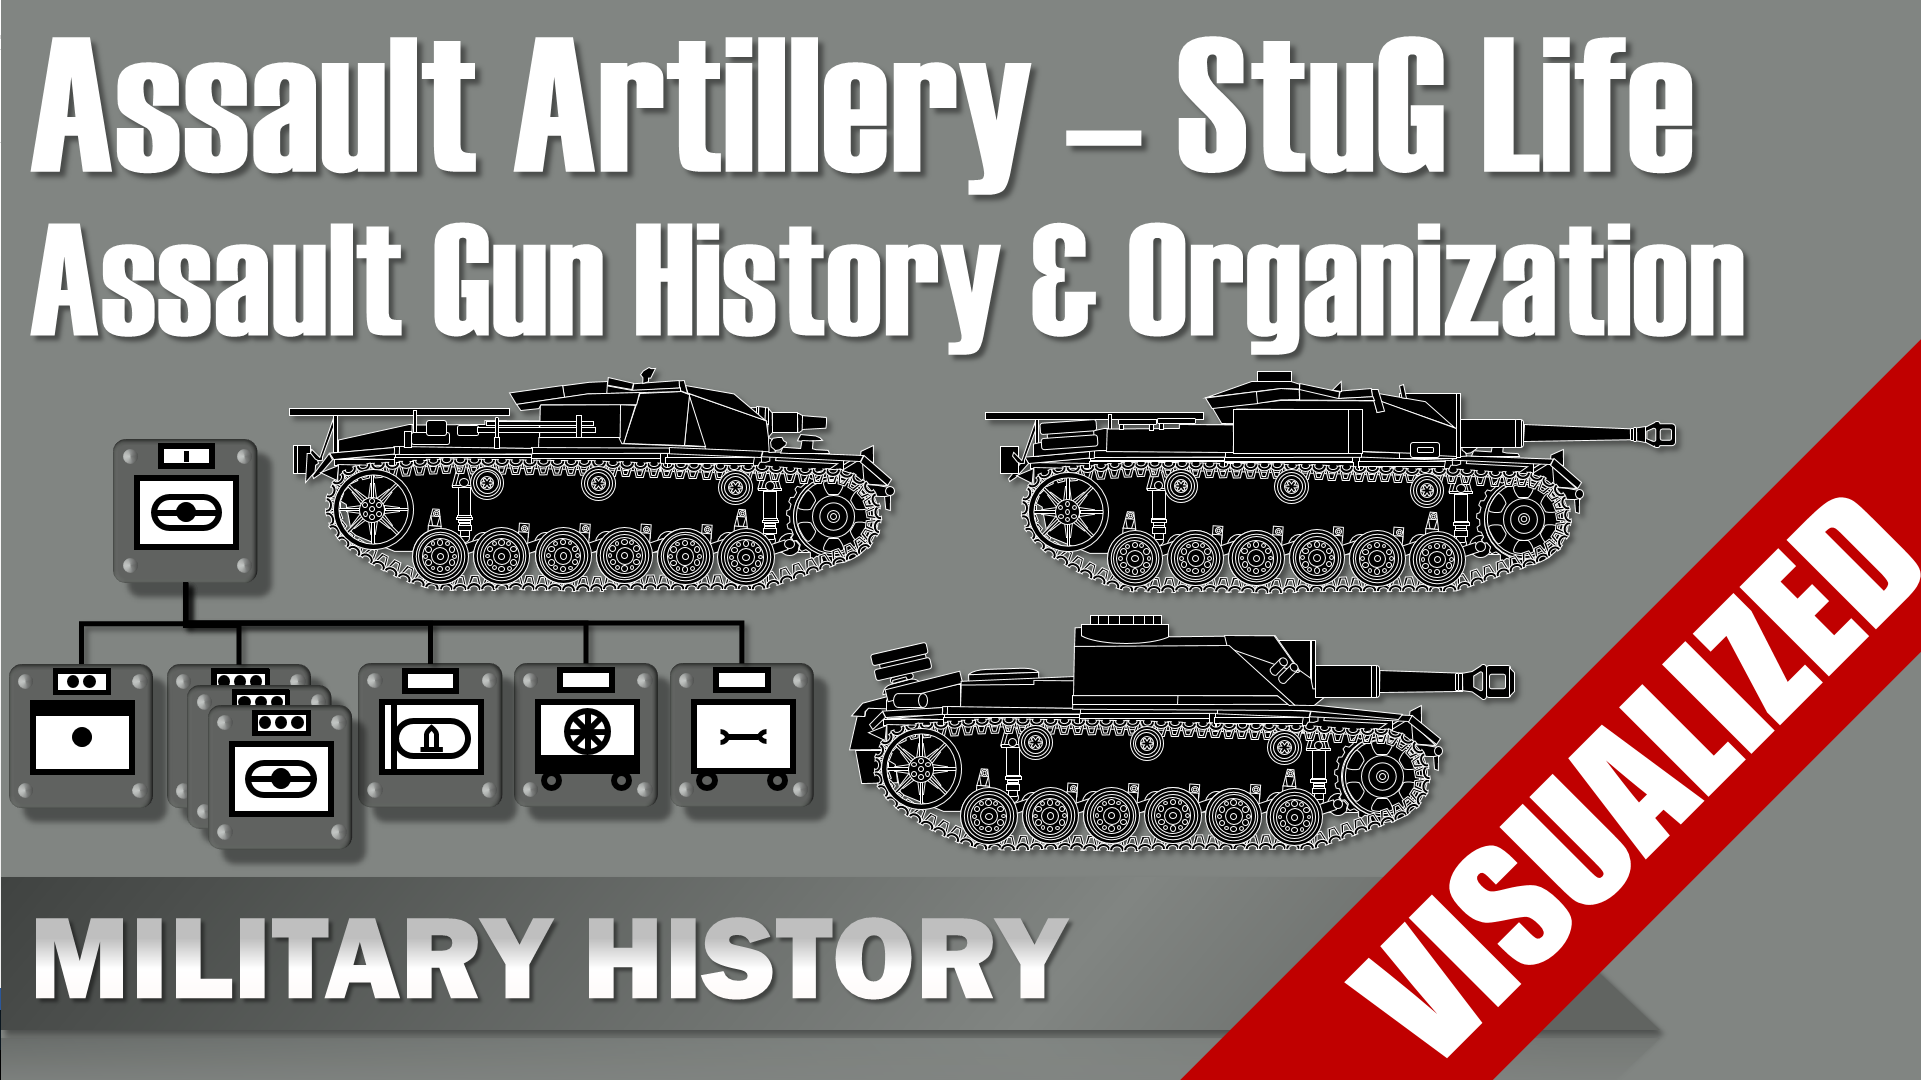 Assault Artillery Stug Life Assault Gun History Organization